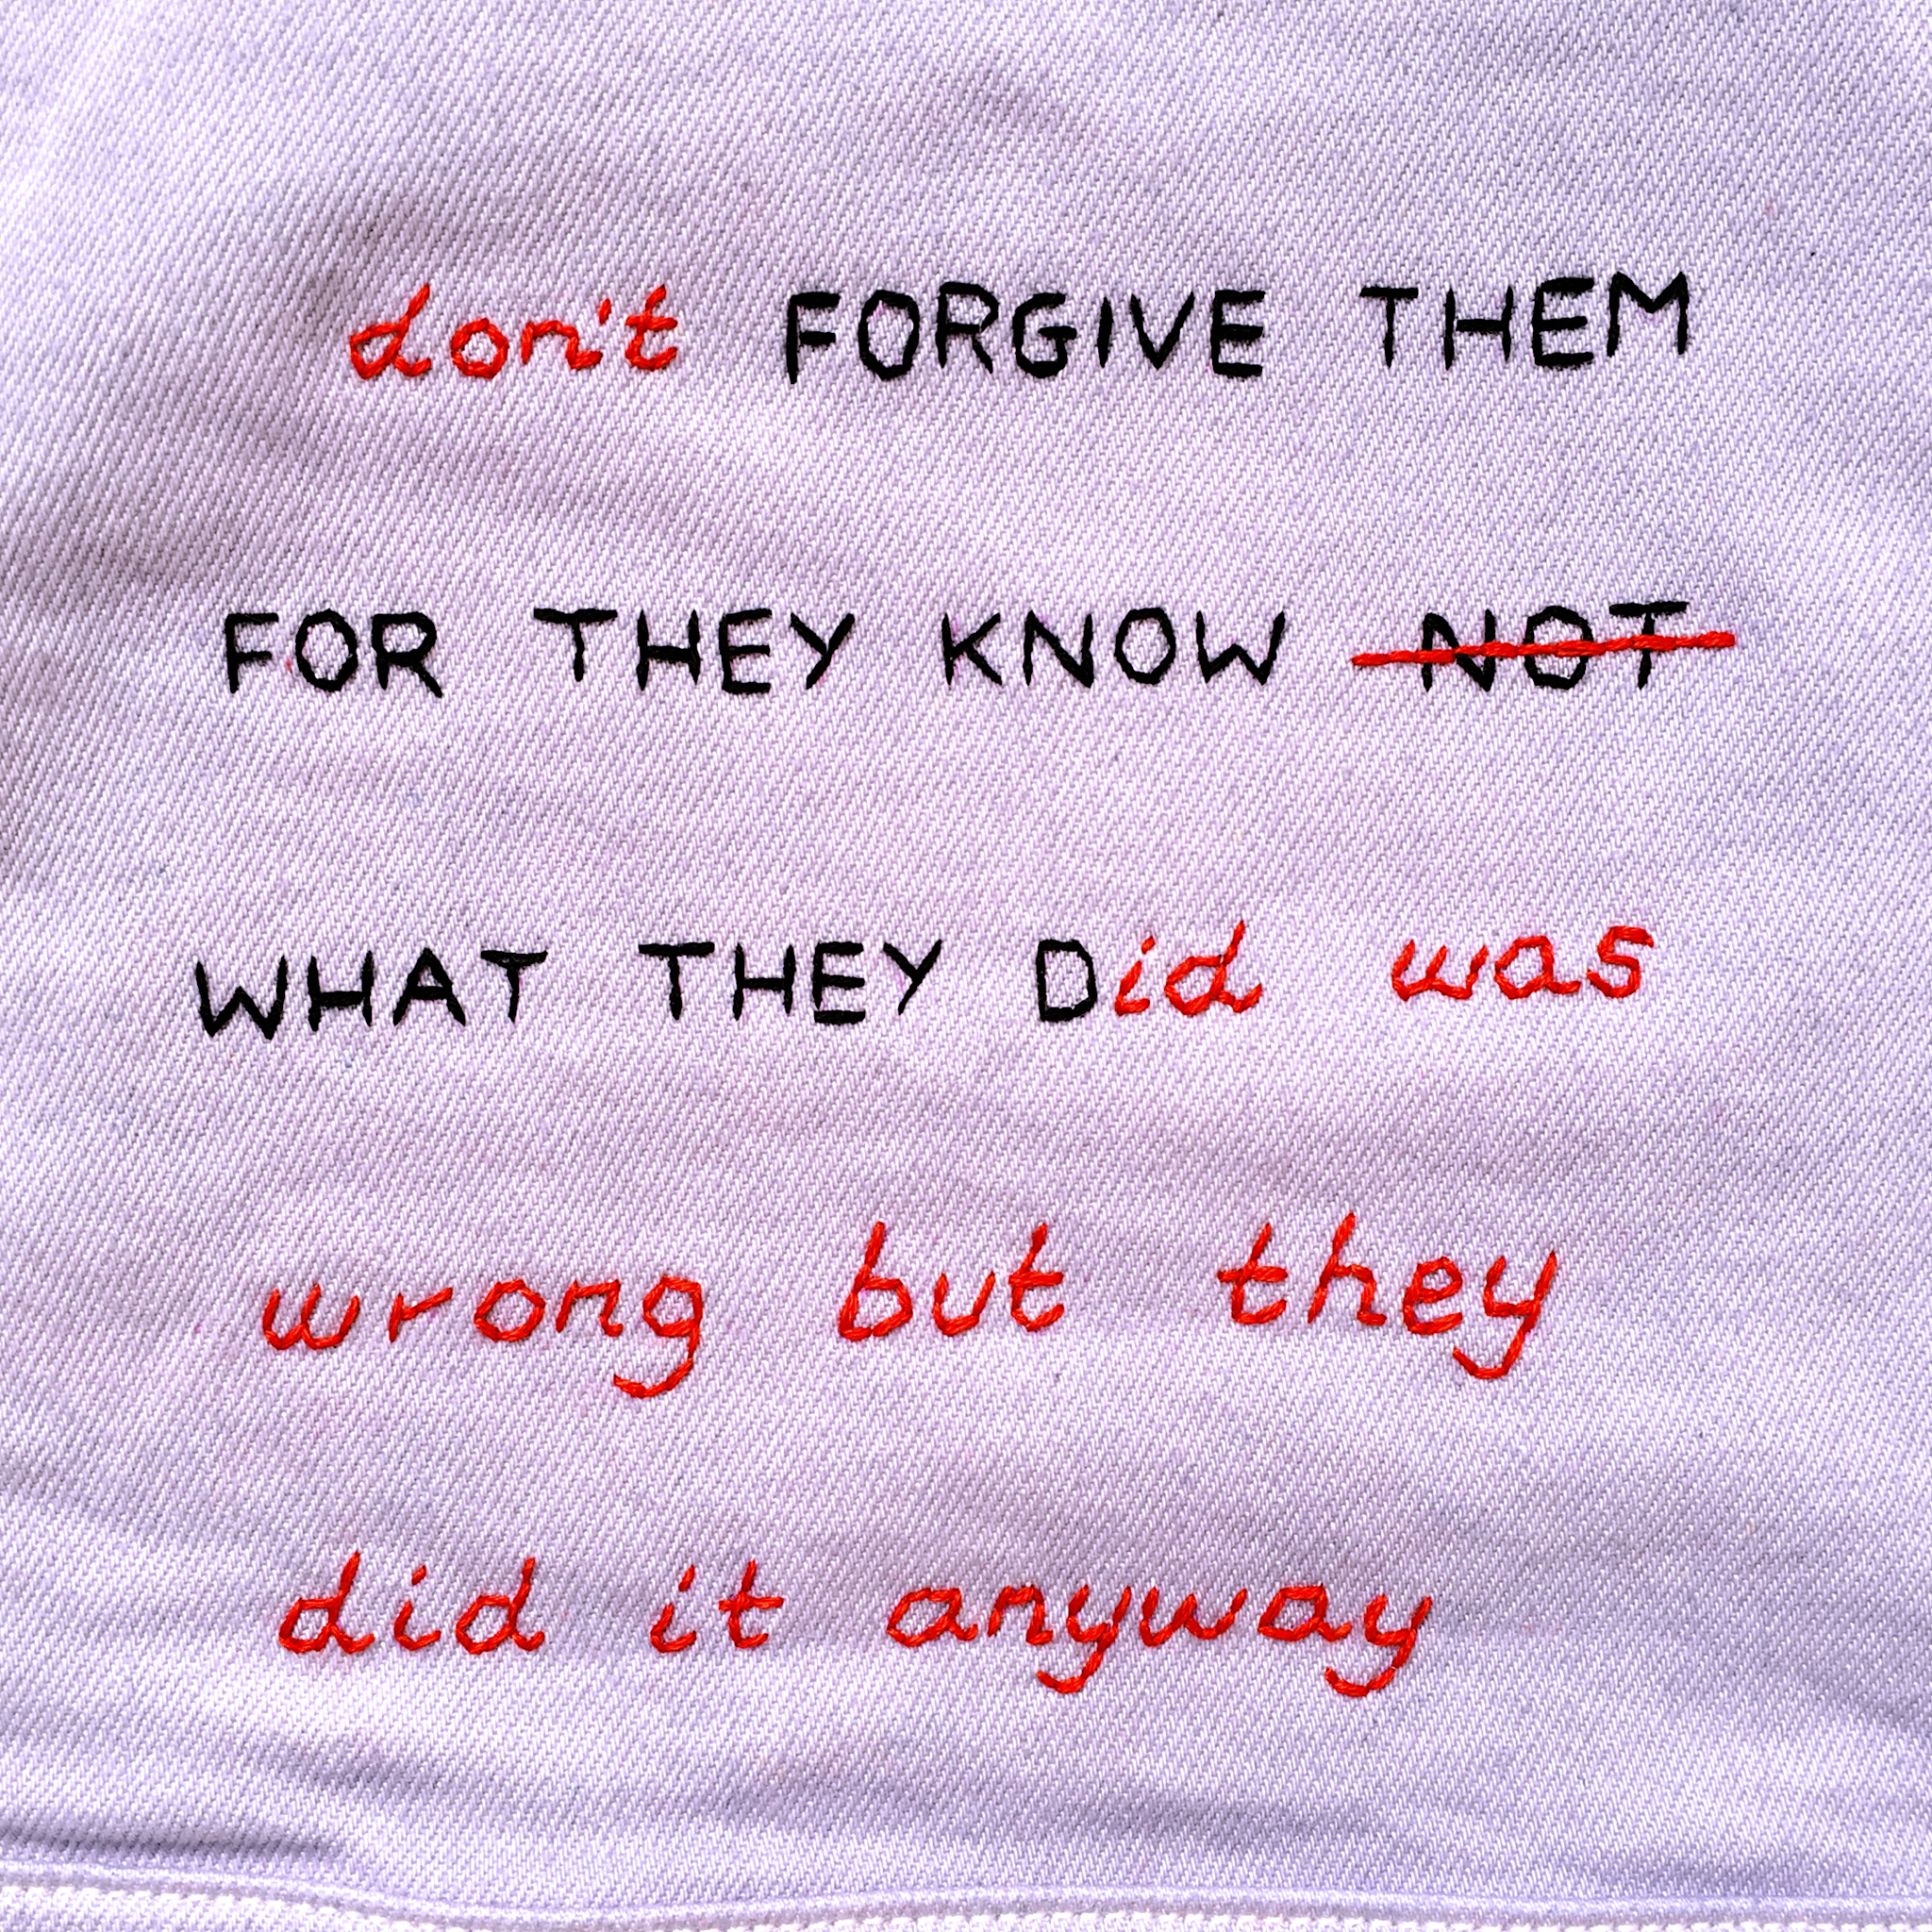 "embroidered ""don't forgive them, for they know what they did was wrong but they did it anyway"", 2018, Sophie King"